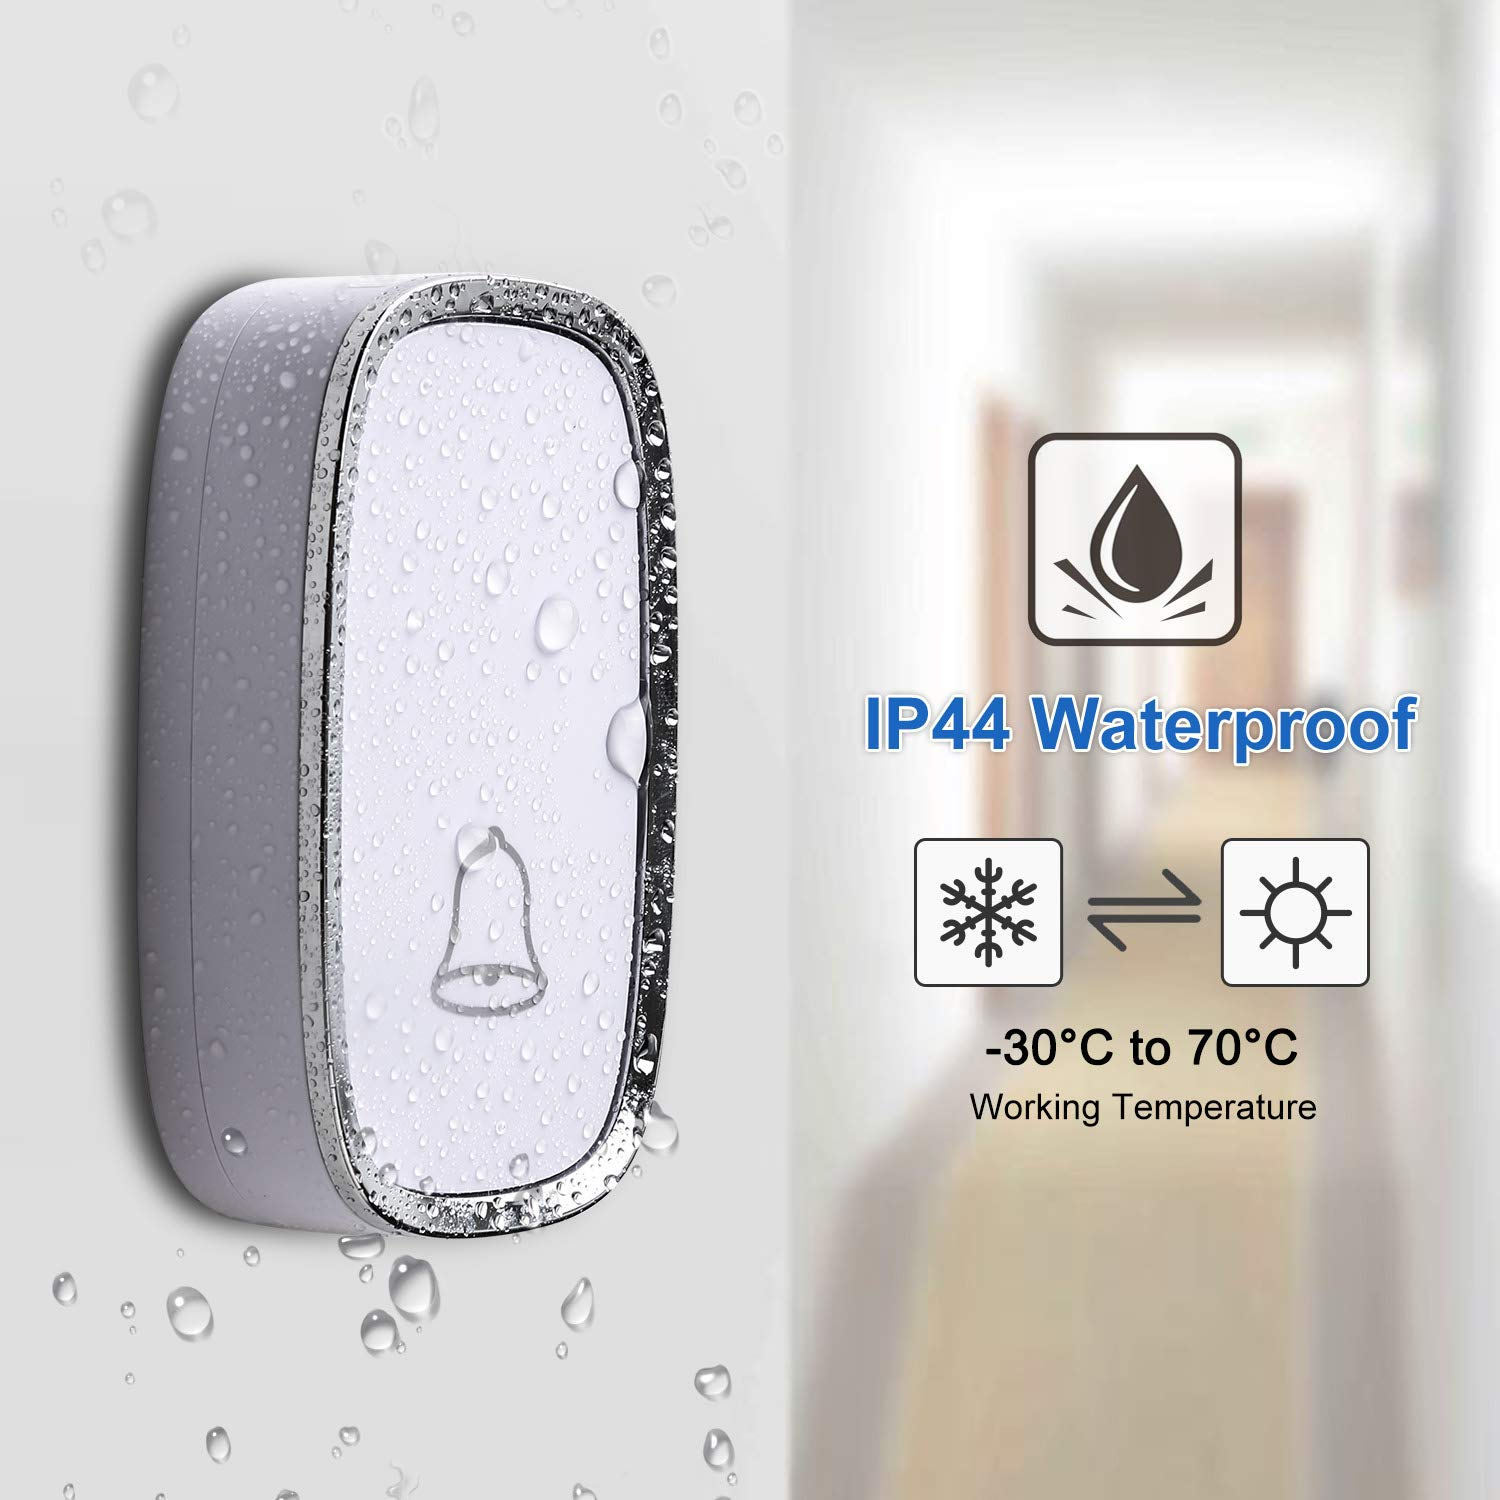 4 Level Volume 1000 Ft Long Range 36 Chimes 3 receivers + 2 push button AUTENS Wireless Doorbell Waterproof Door Bells /& Chimes with Plugin Receiver /& Push Button Transmitter Battery Operated LED Indicator